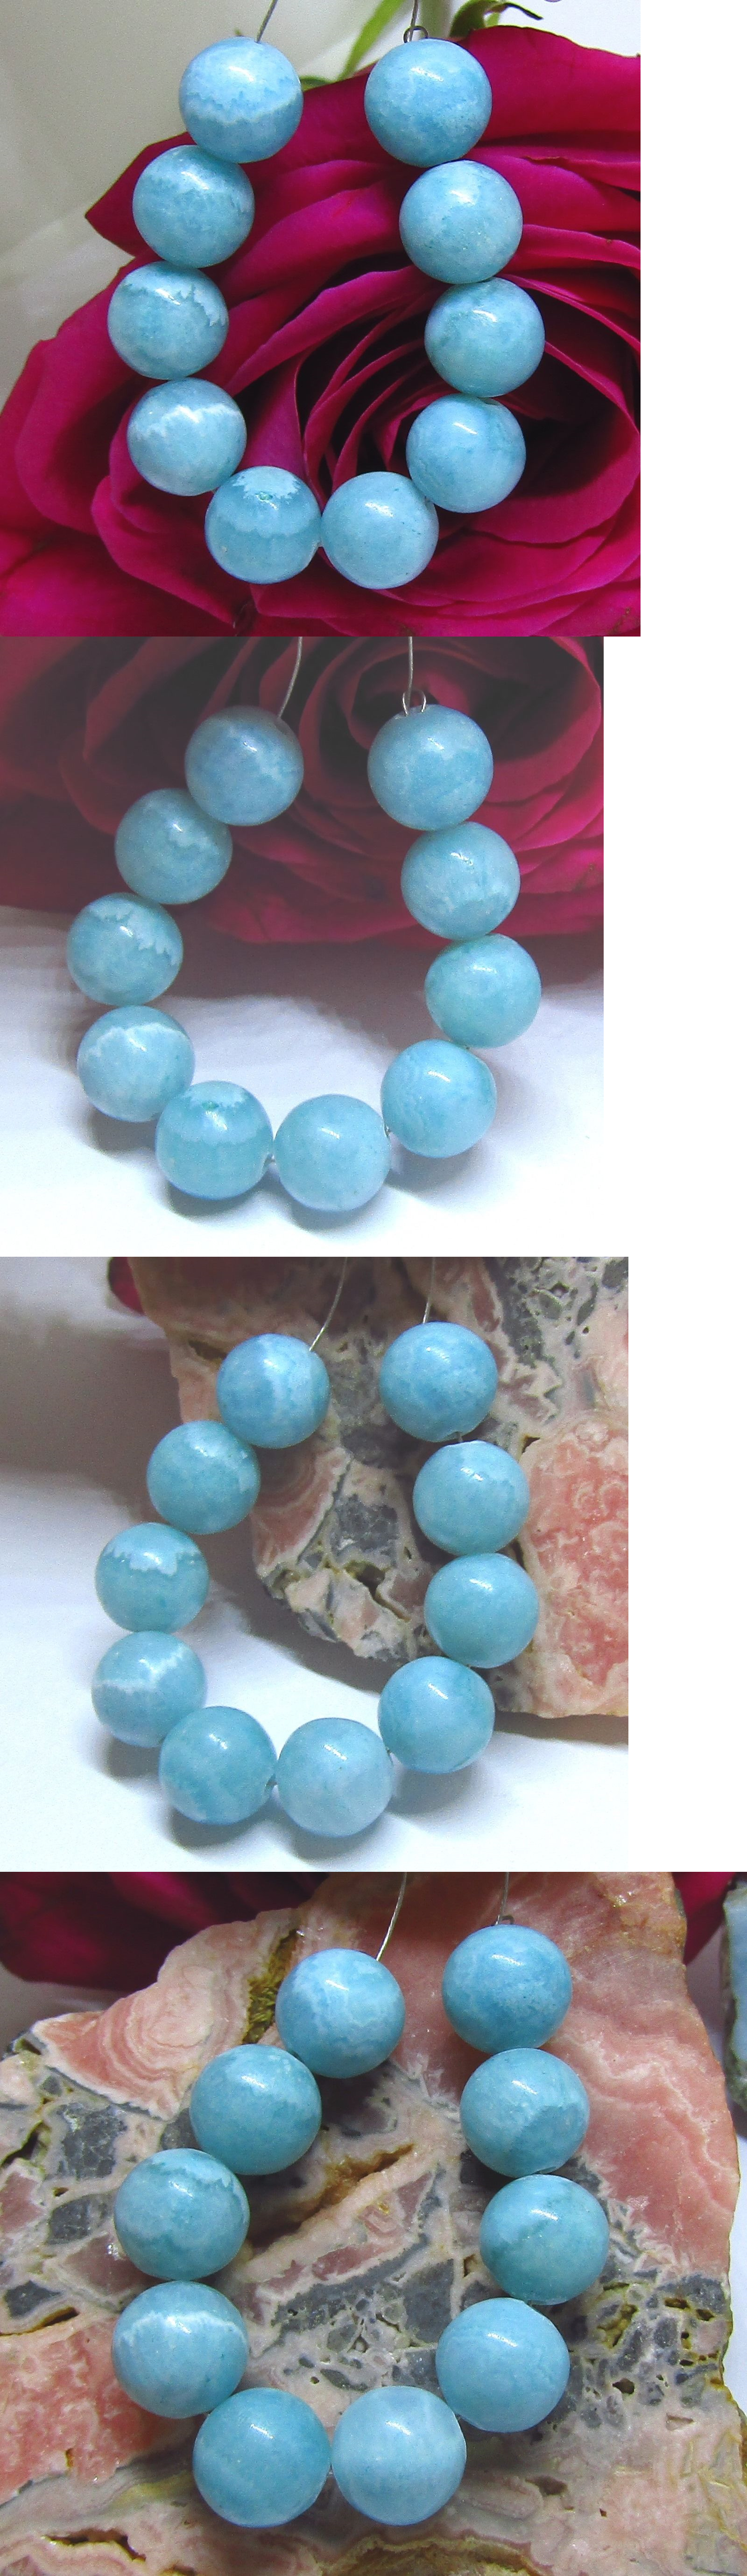 Other Loose Gemstones 282: 10 Rare Natural Blue Amazonite Round Beads From Madagascar 10Mm BUY IT NOW ONLY: $35.0